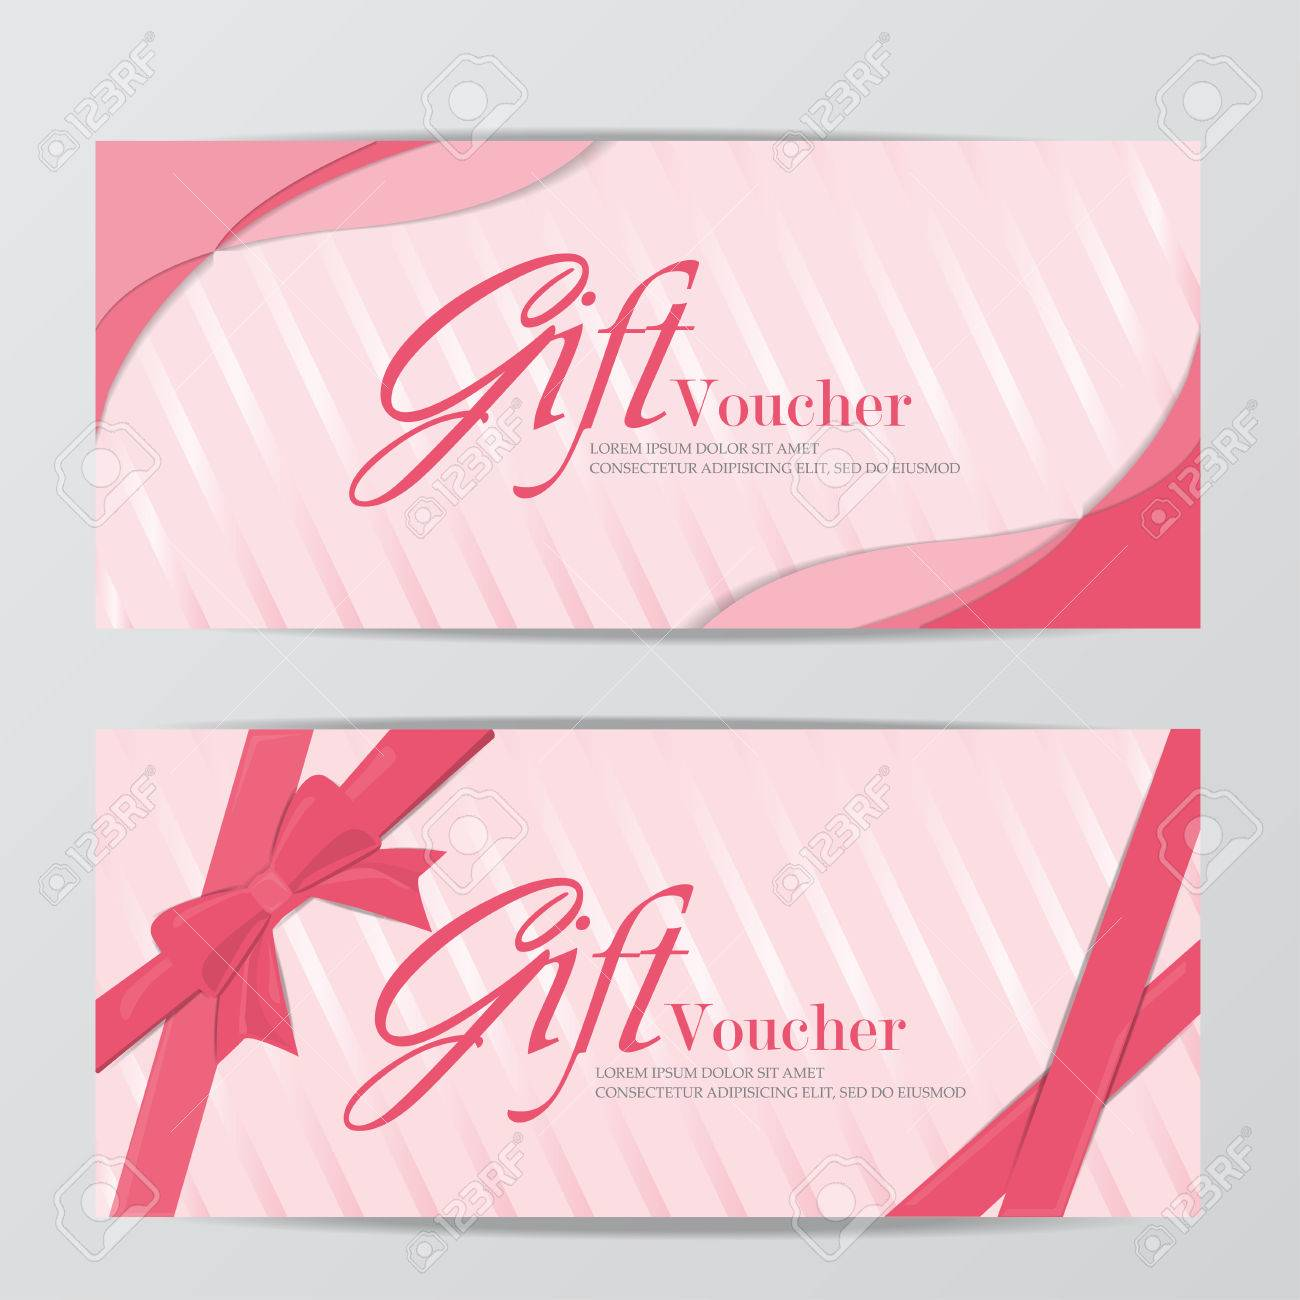 Girl gift voucher certificate coupon template sweet pink cute girl gift voucher certificate coupon template sweet pink cute design can be use for yadclub Image collections